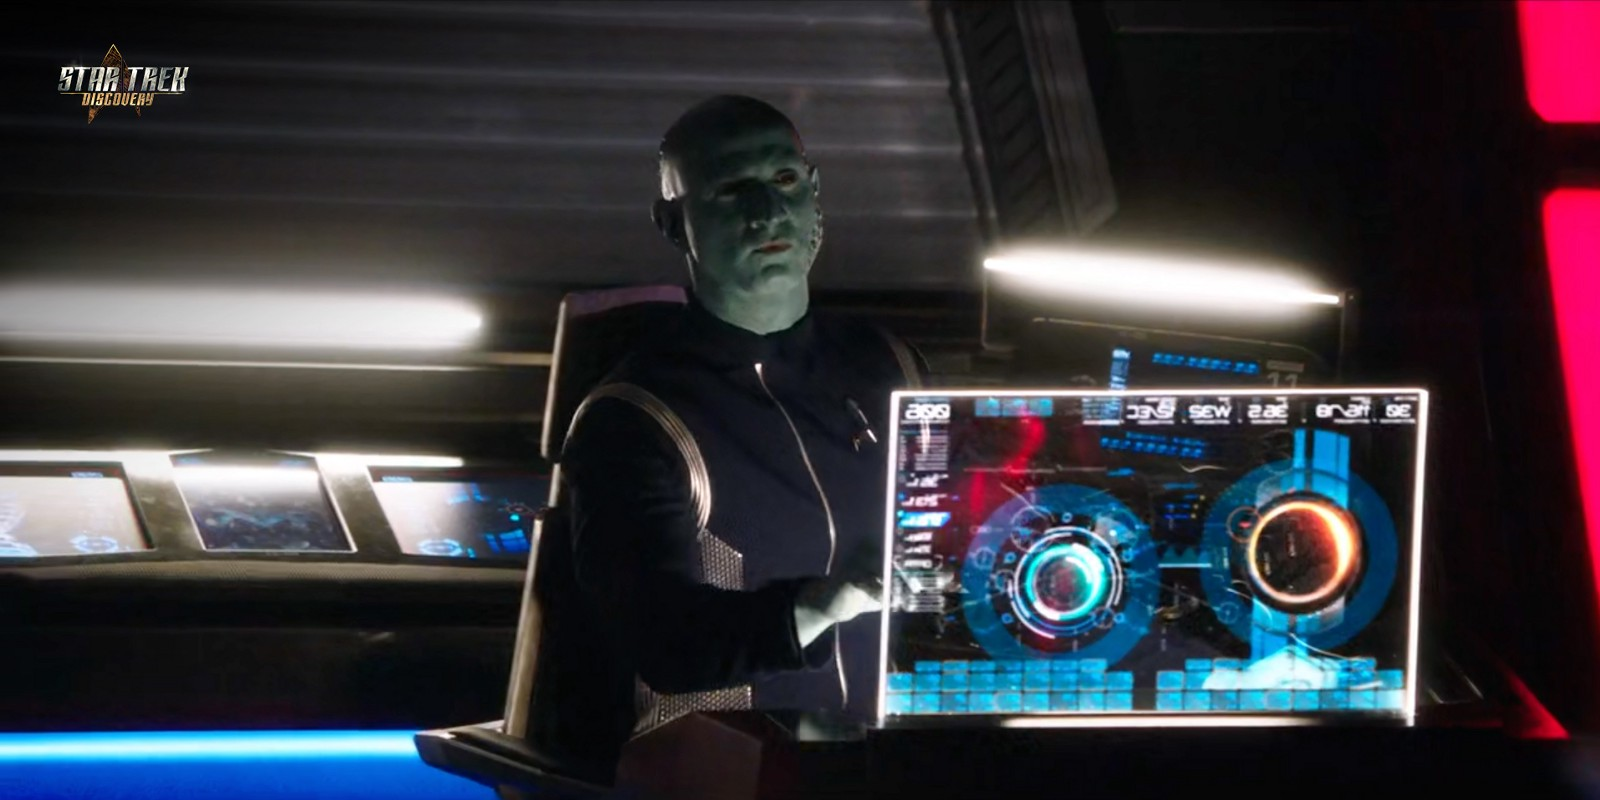 HiTech Builder high quality HUD in Star Trek Discovery